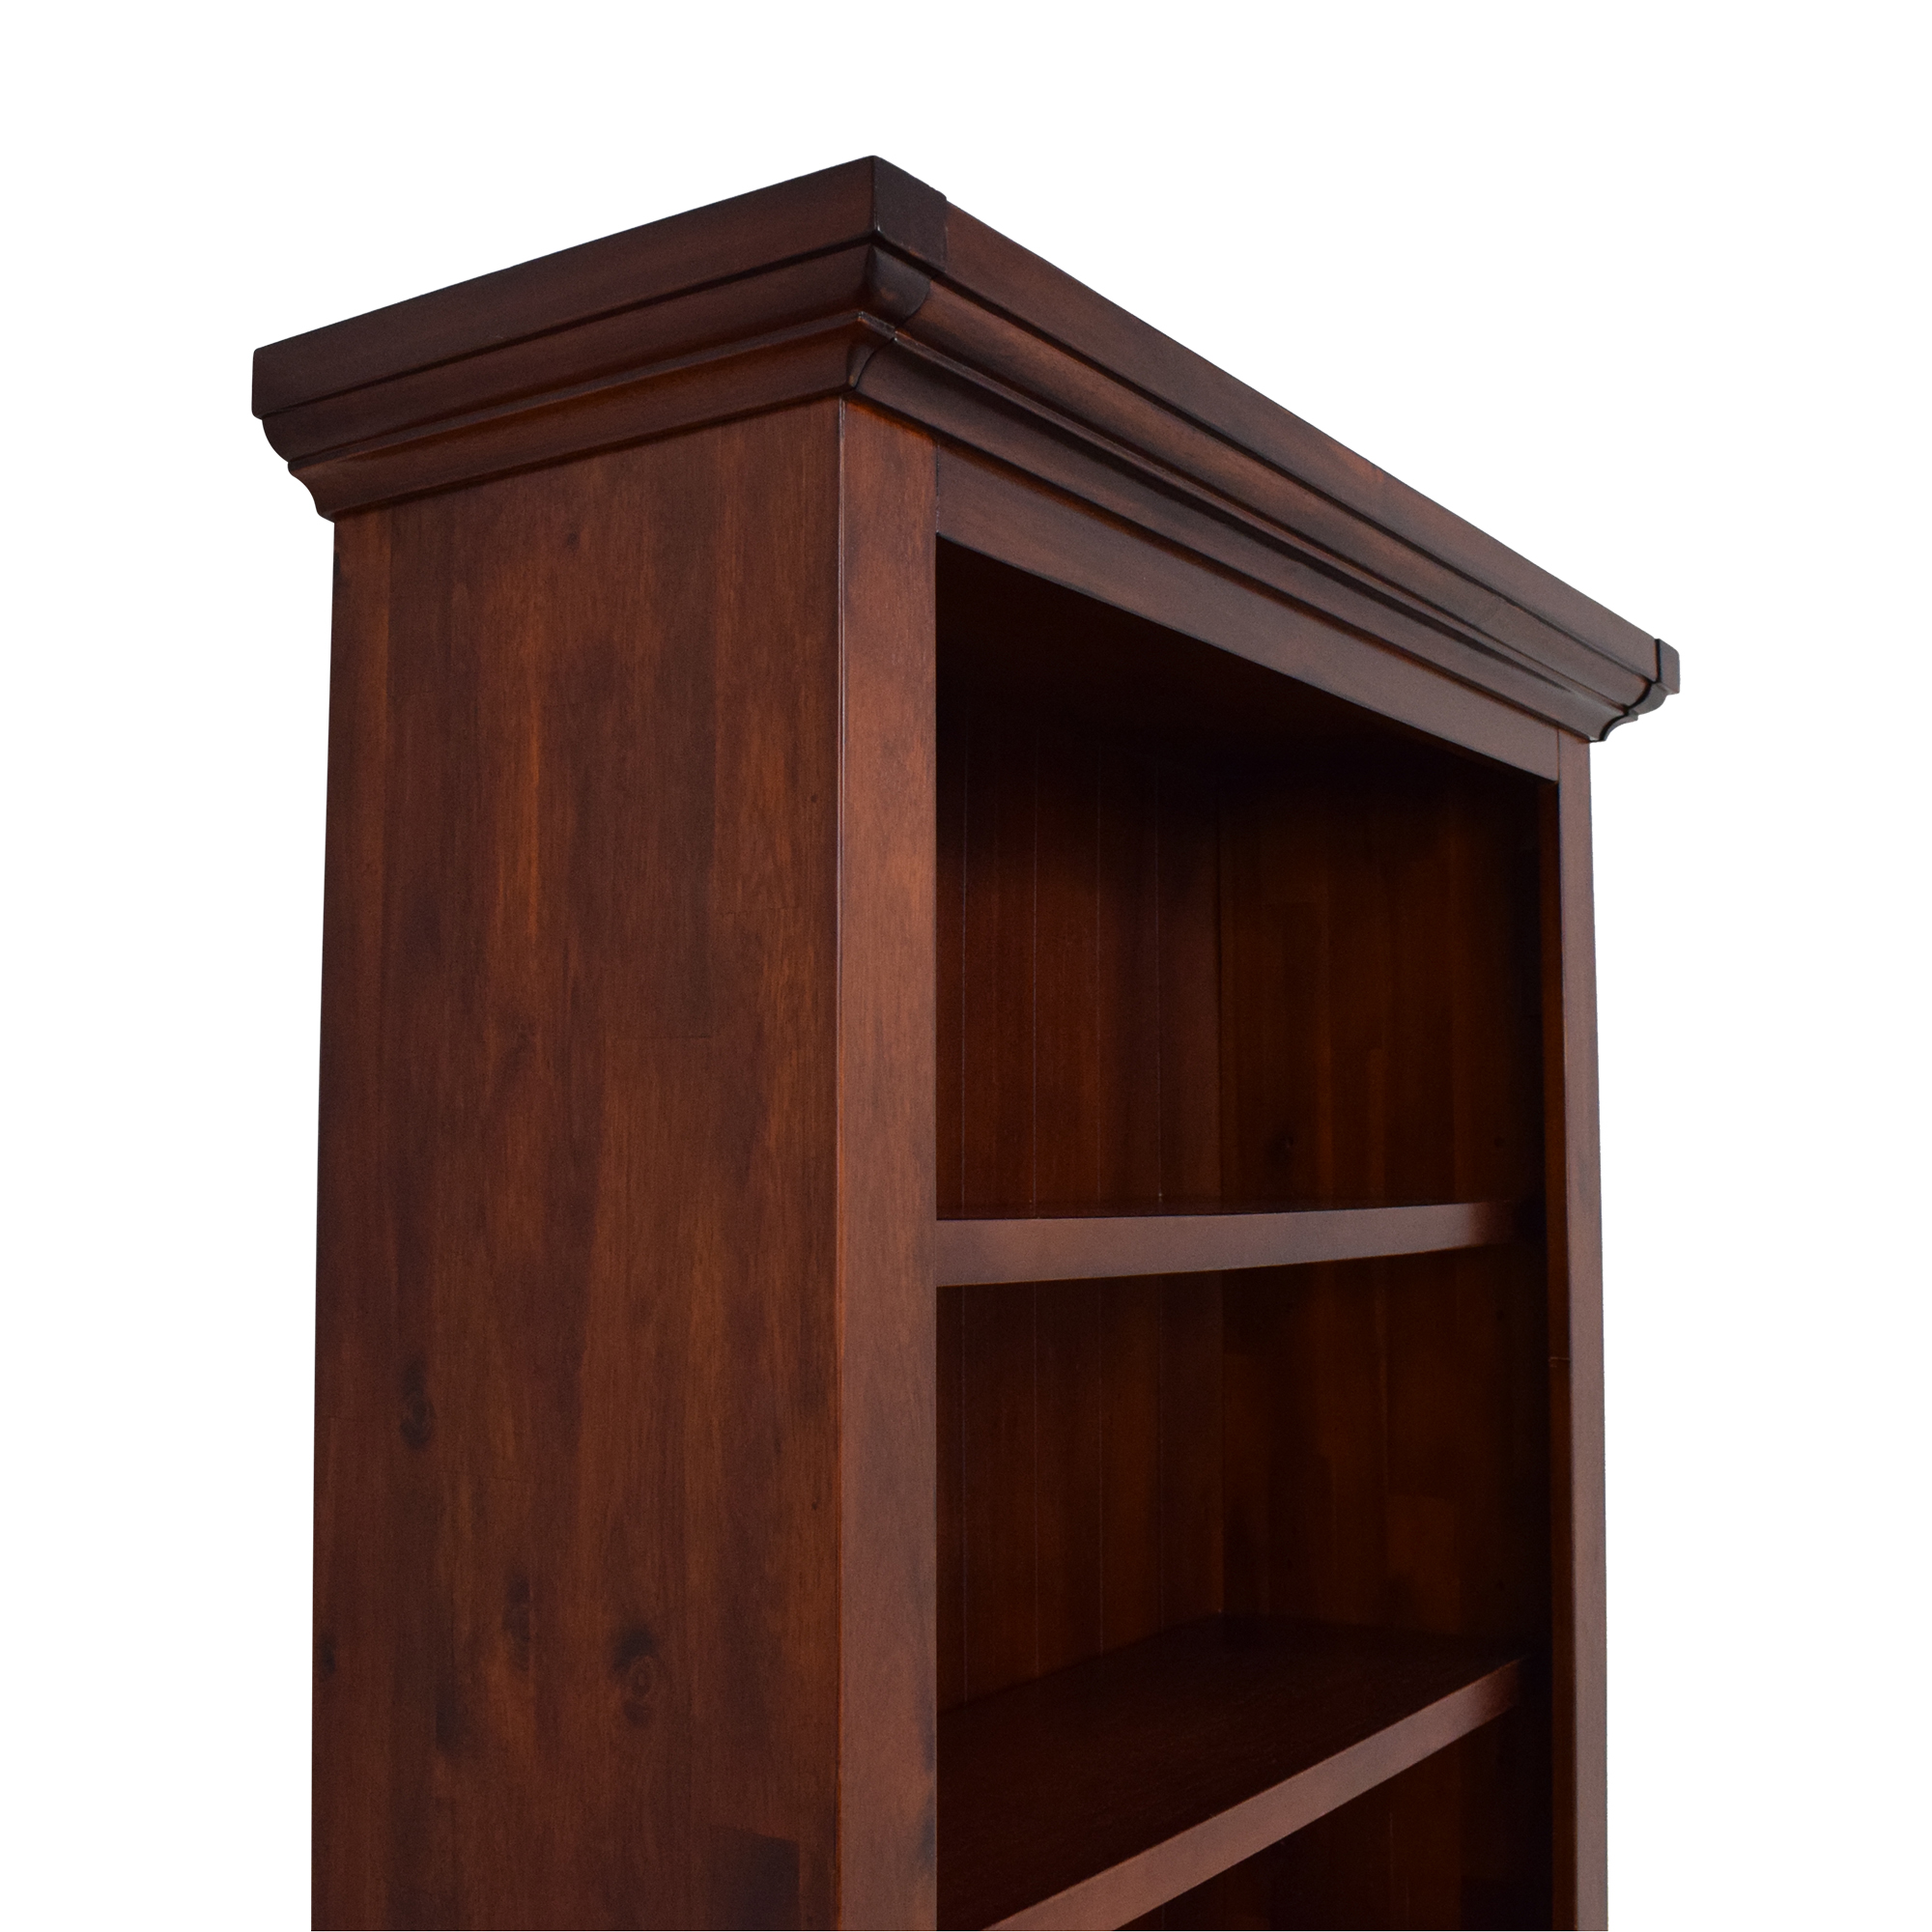 Tall Bookshelf with Drawer for sale